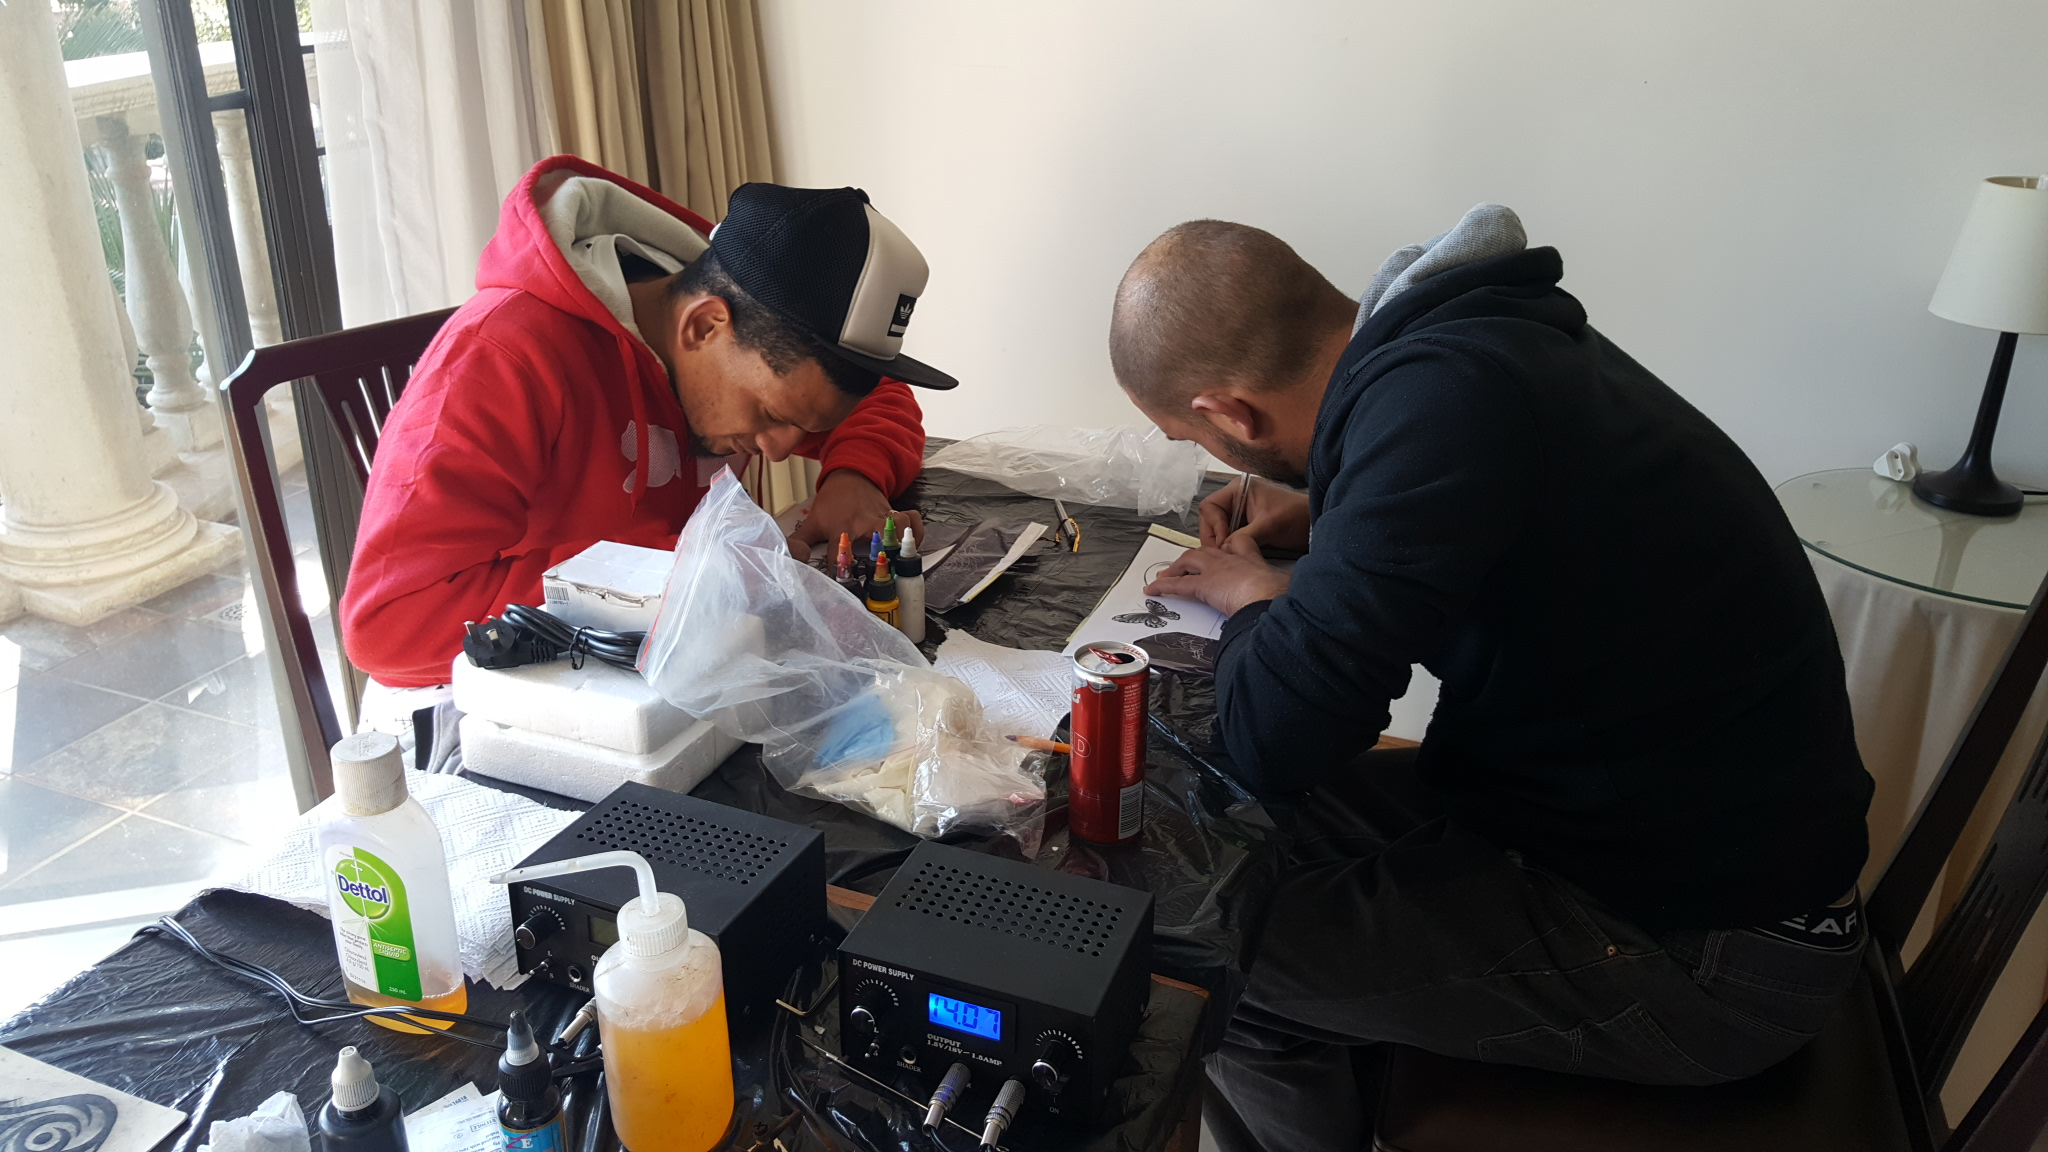 Tattoo Artists in South Africa